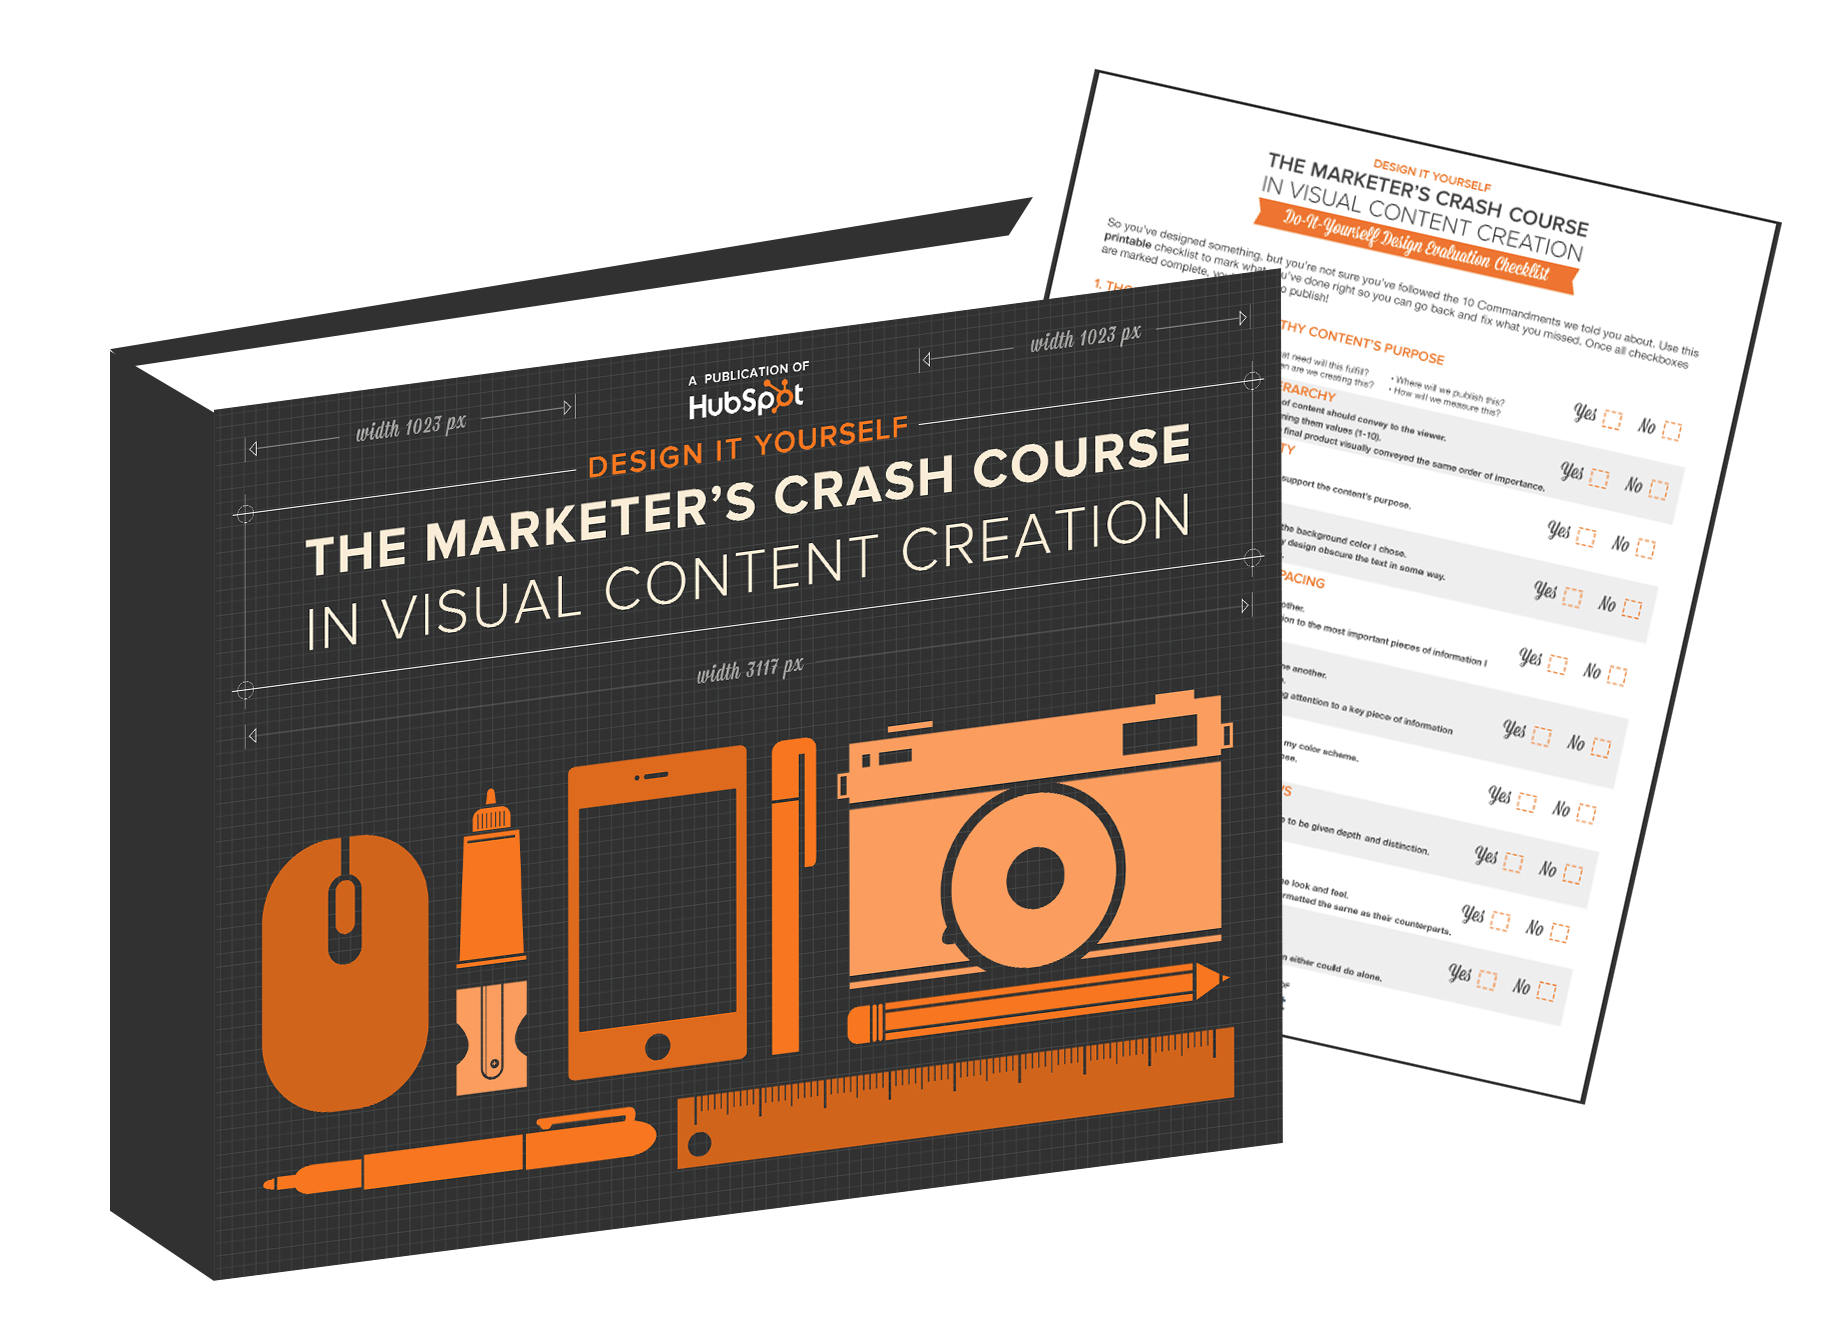 design-it-yourself-the-marketers-crash-course-in-visual-content-creation